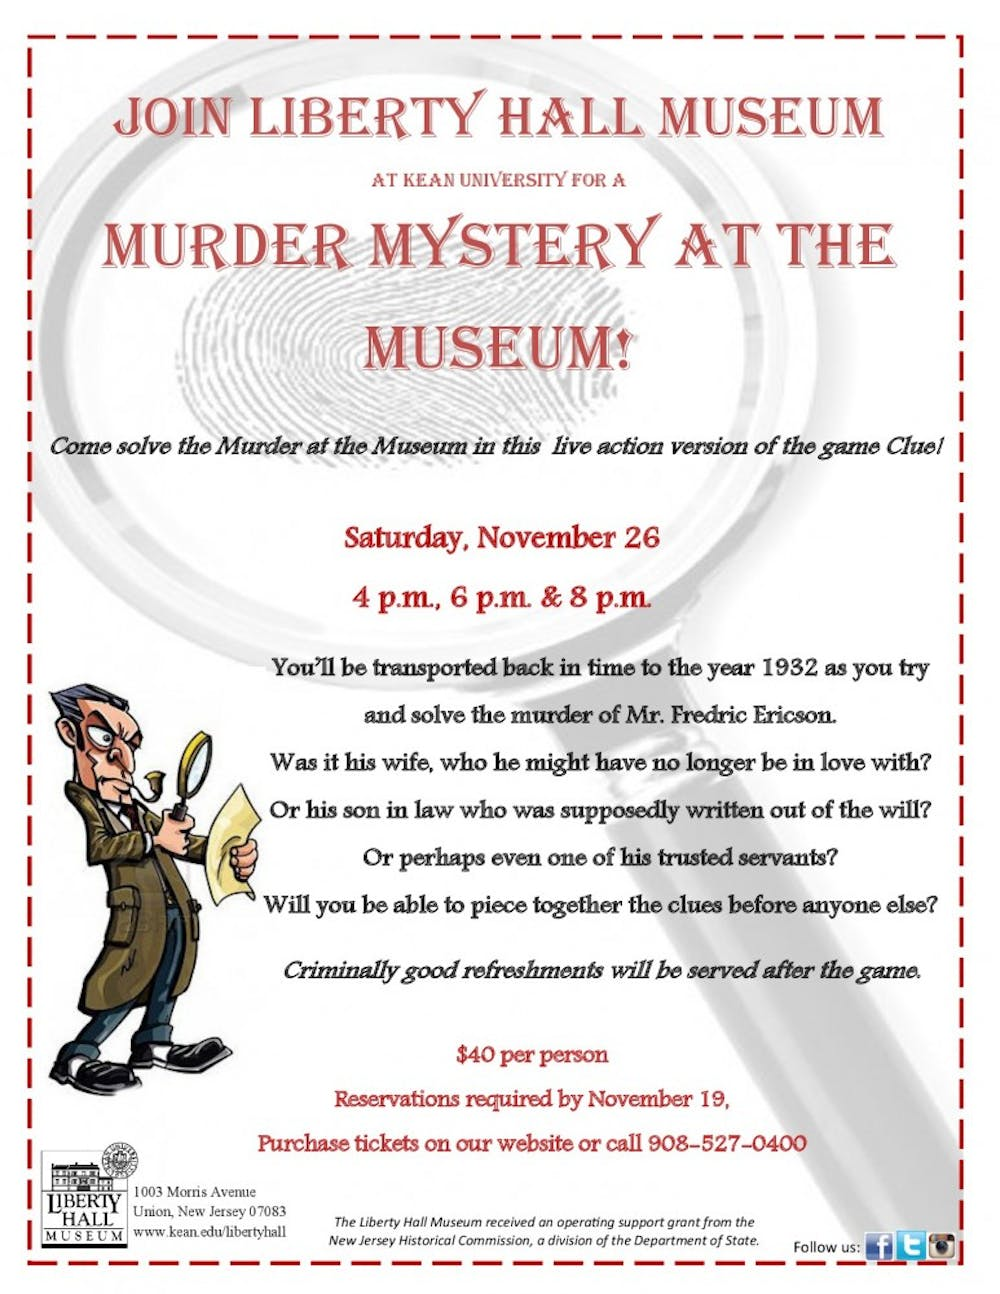 Can Students Solve A Murder Mystery?